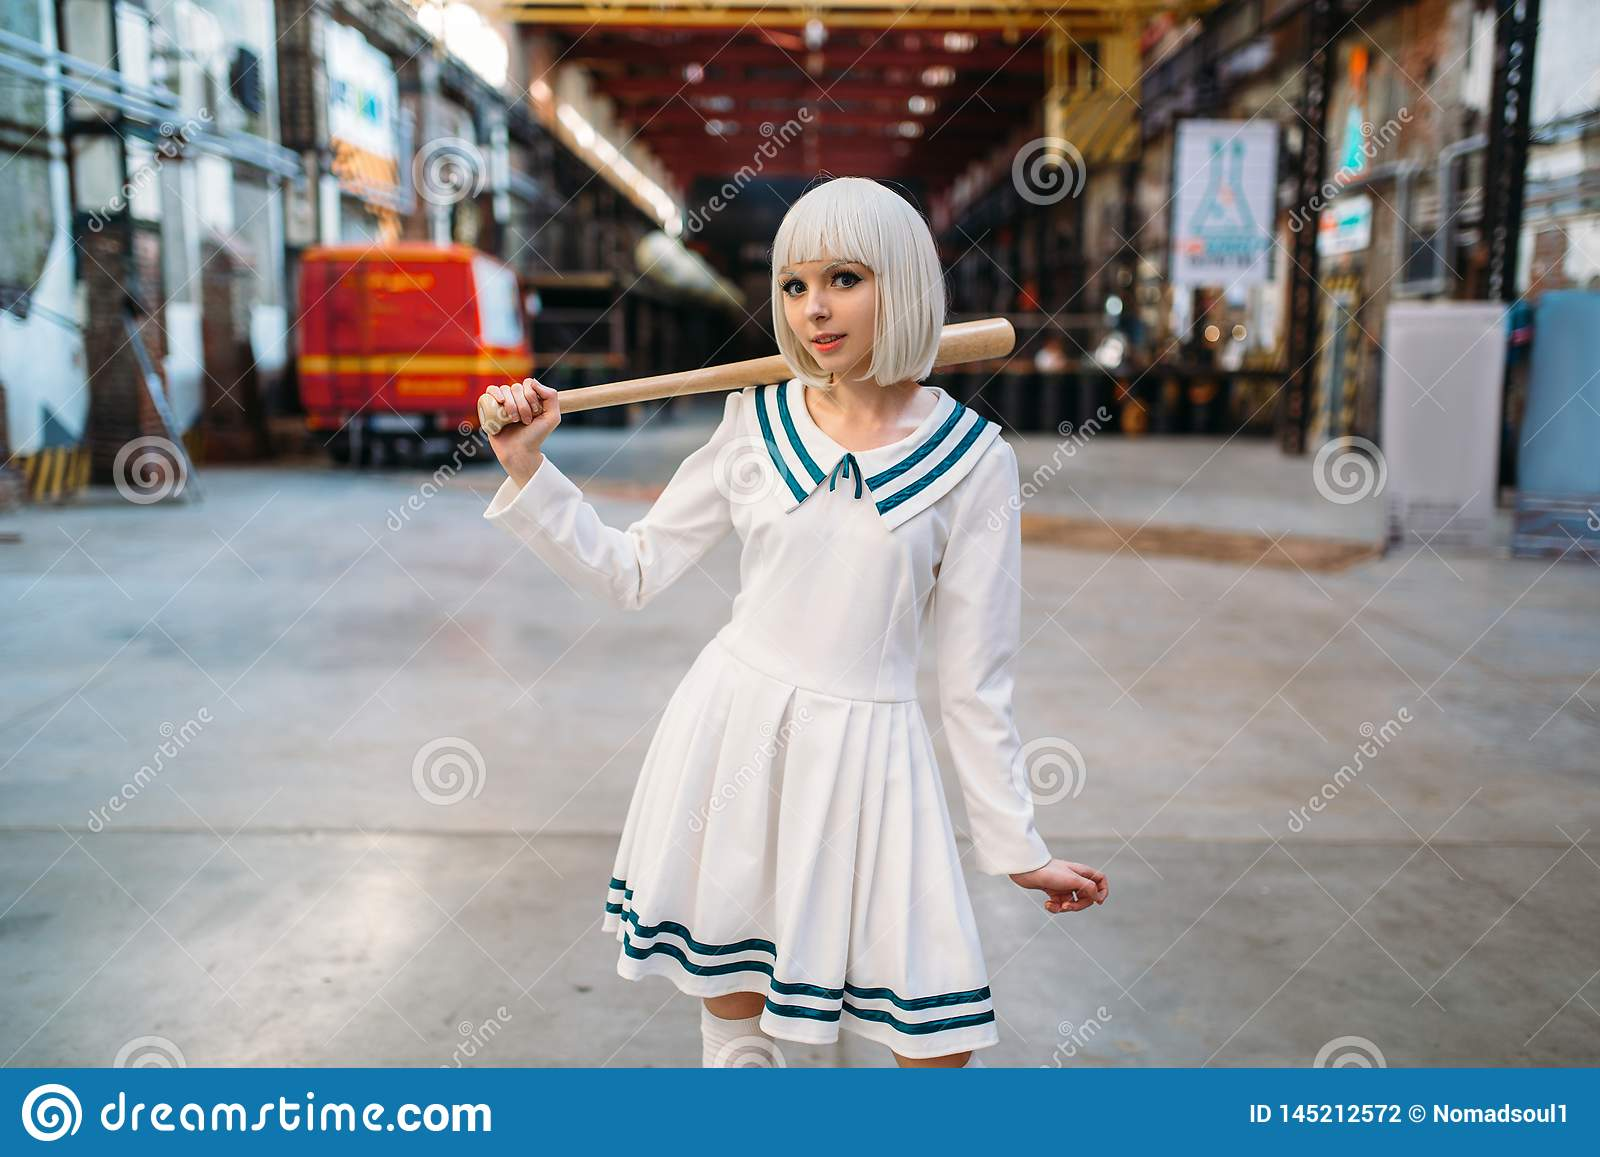 Cute anime style blonde girl with baseball bat